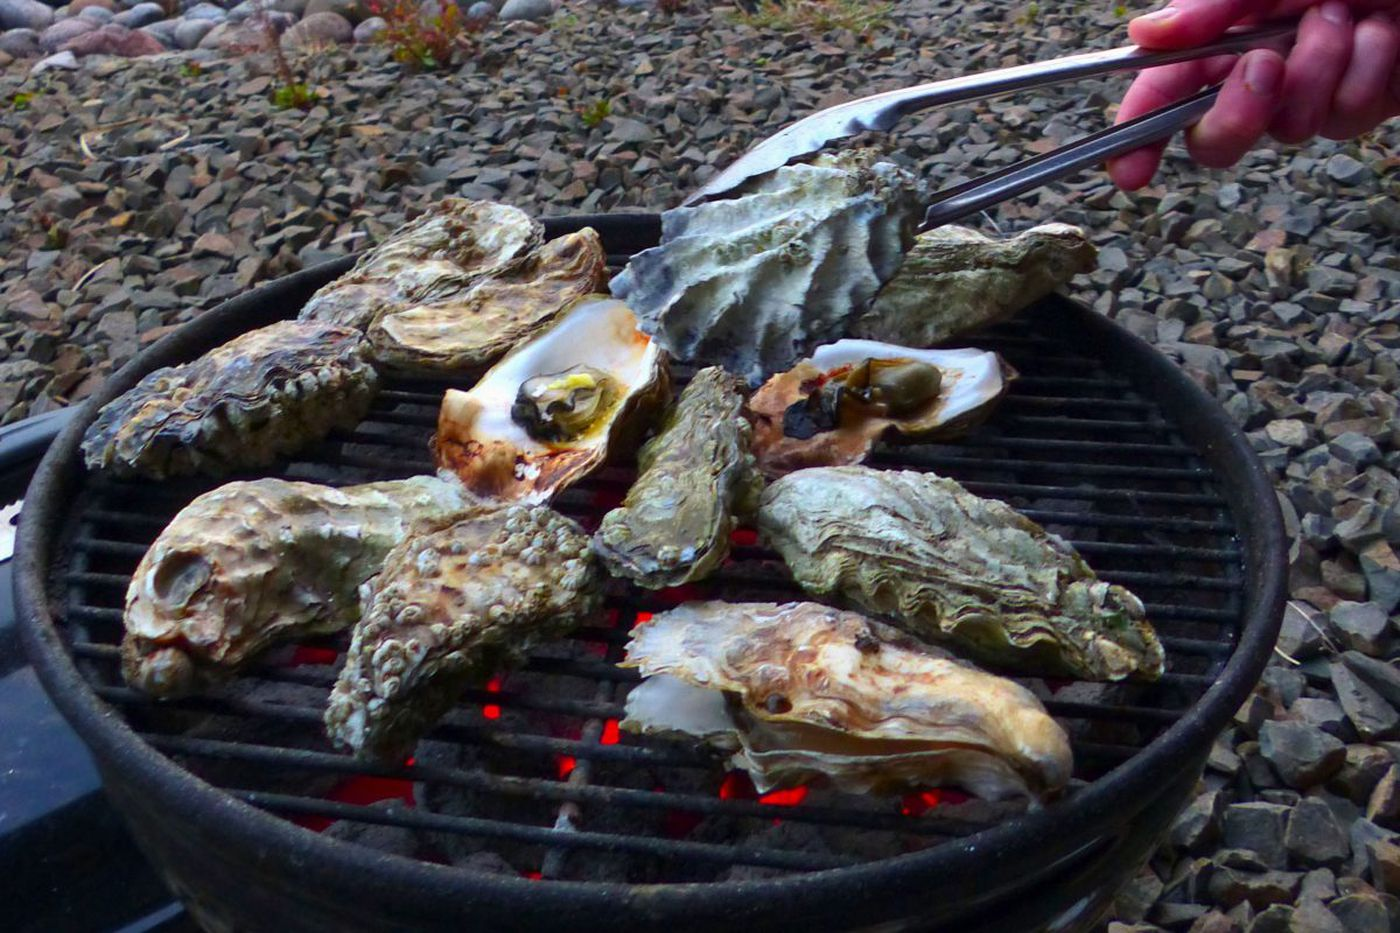 Aw, shucks: Oysterville offers a chance to come out of your shell